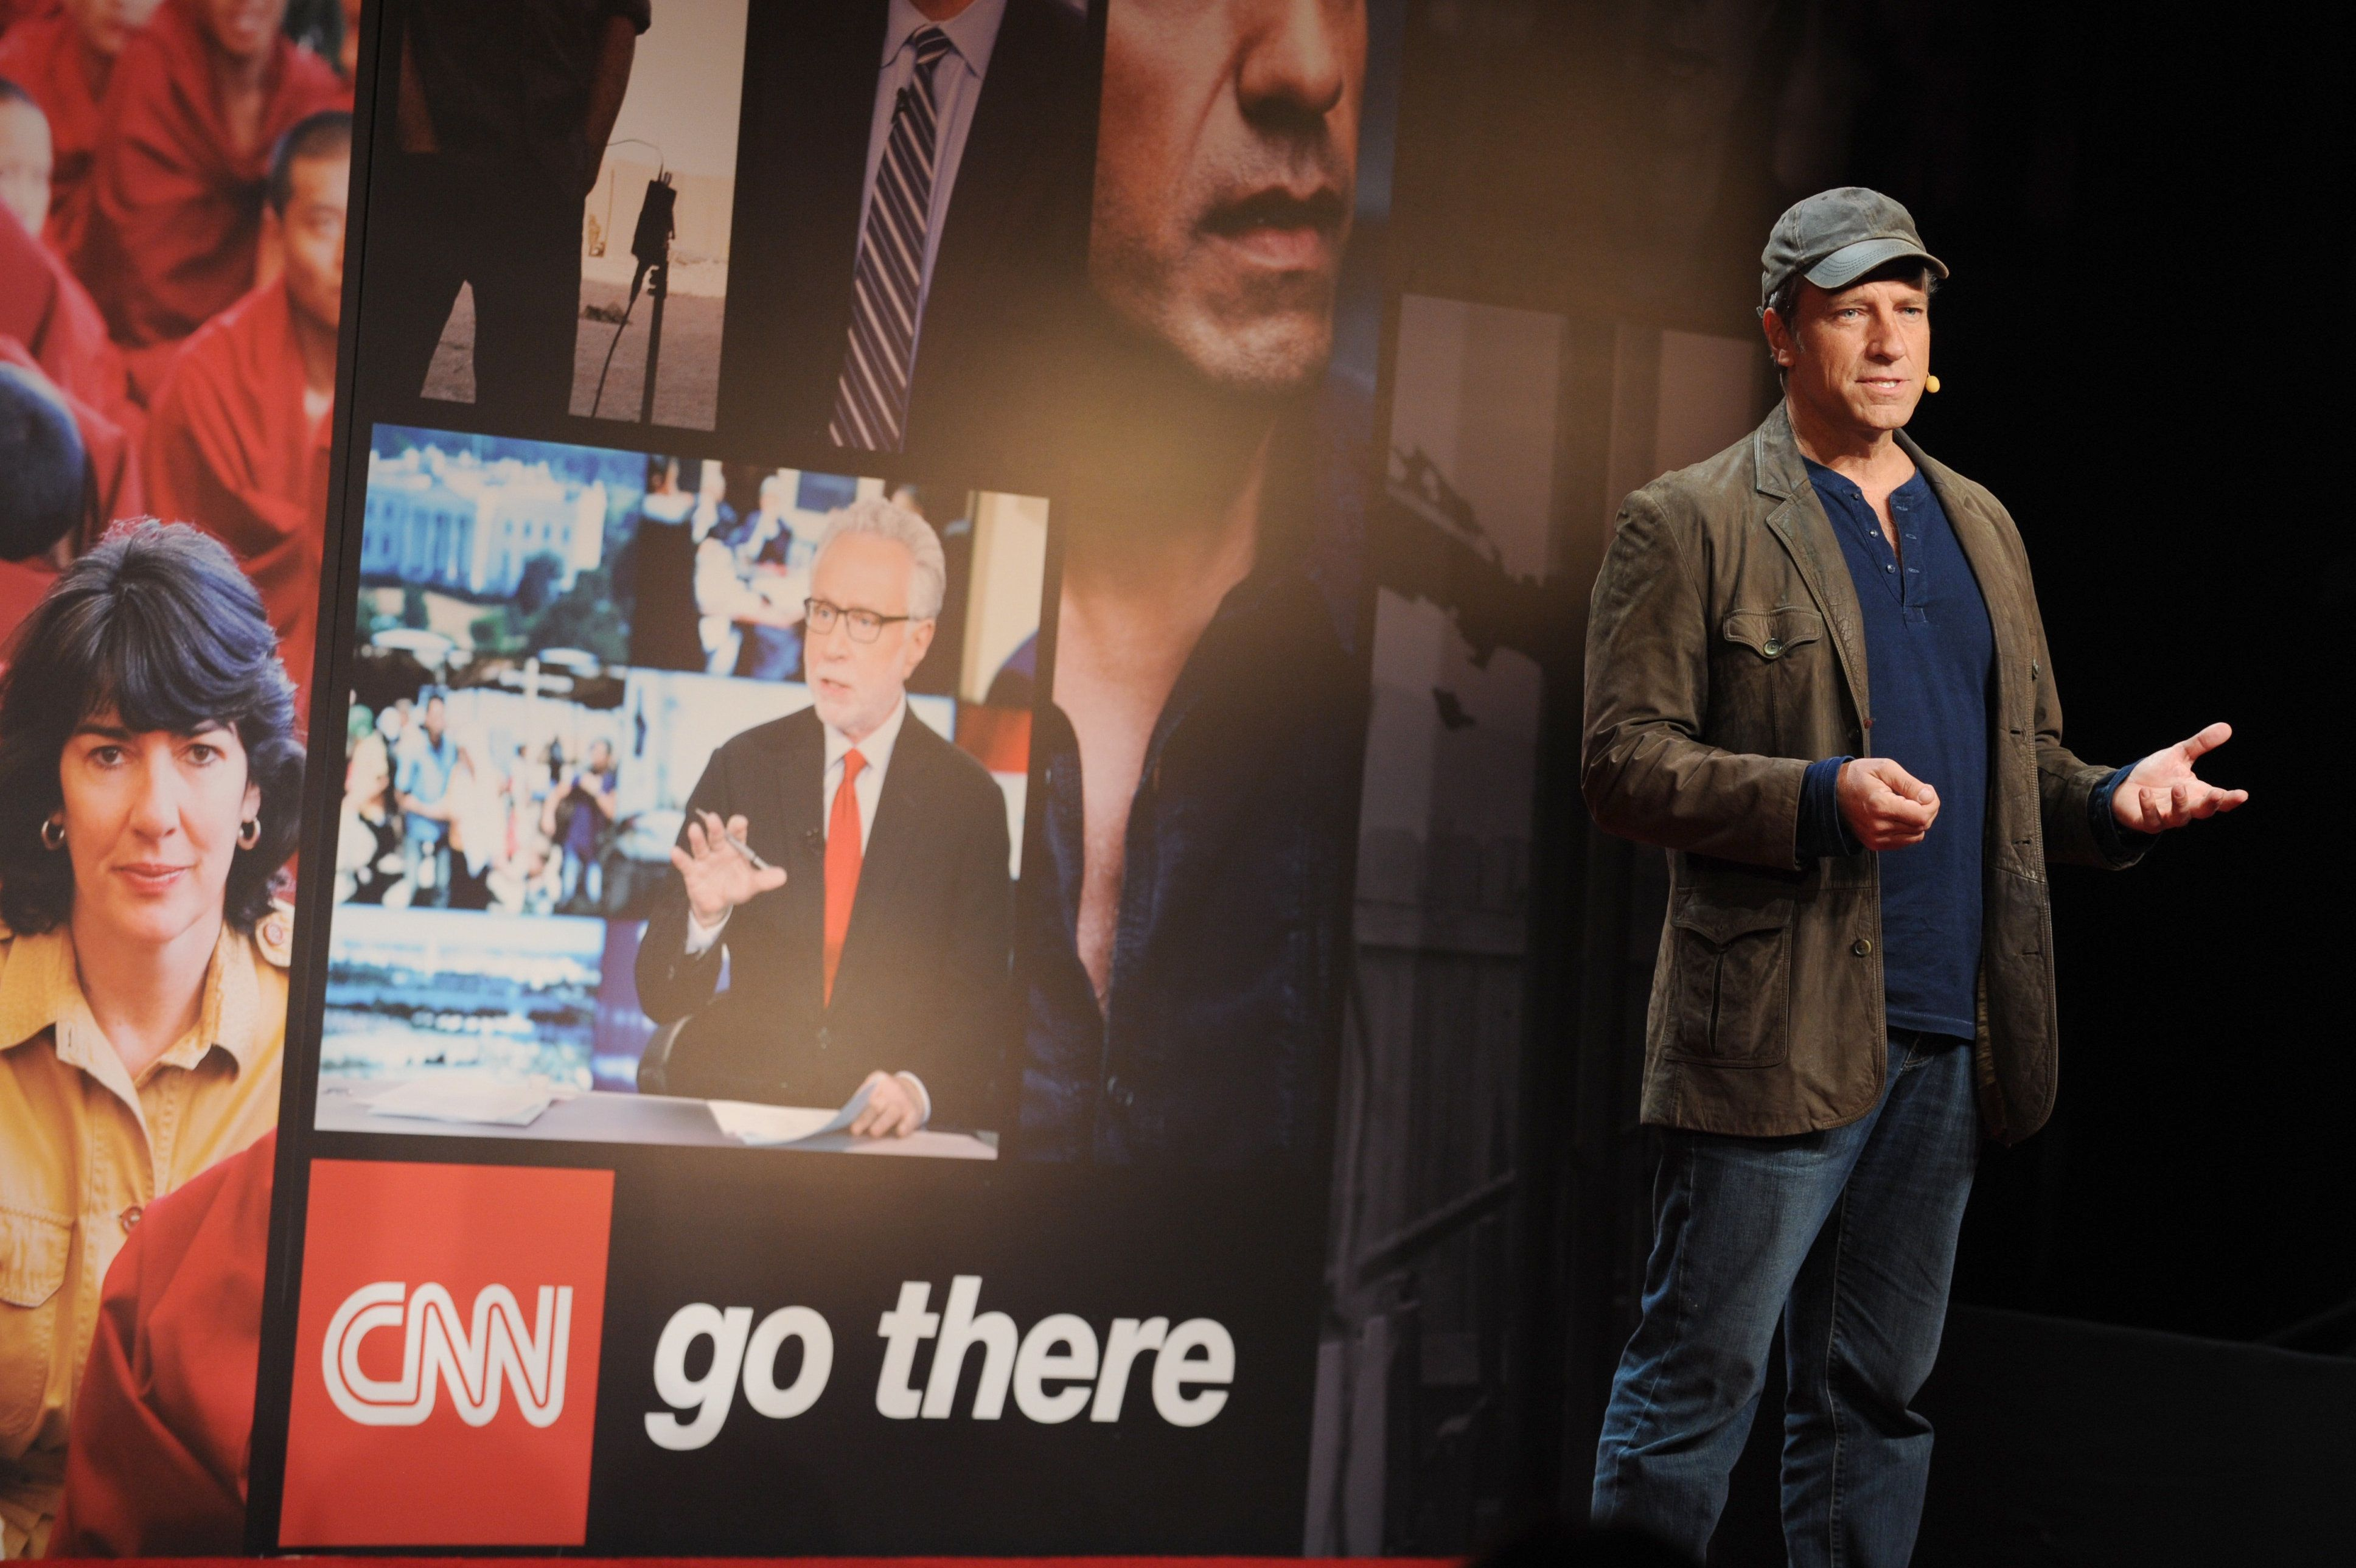 NEW YORK, NY - APRIL 10:  Mike Rowe speaks onstage at the CNN Upfront 2014 at Skylight Modern on April 10, 2014 in New York City.  24679_002_0163.JPG  (Photo by Bryan Bedder/WireImage for Turner Networks)